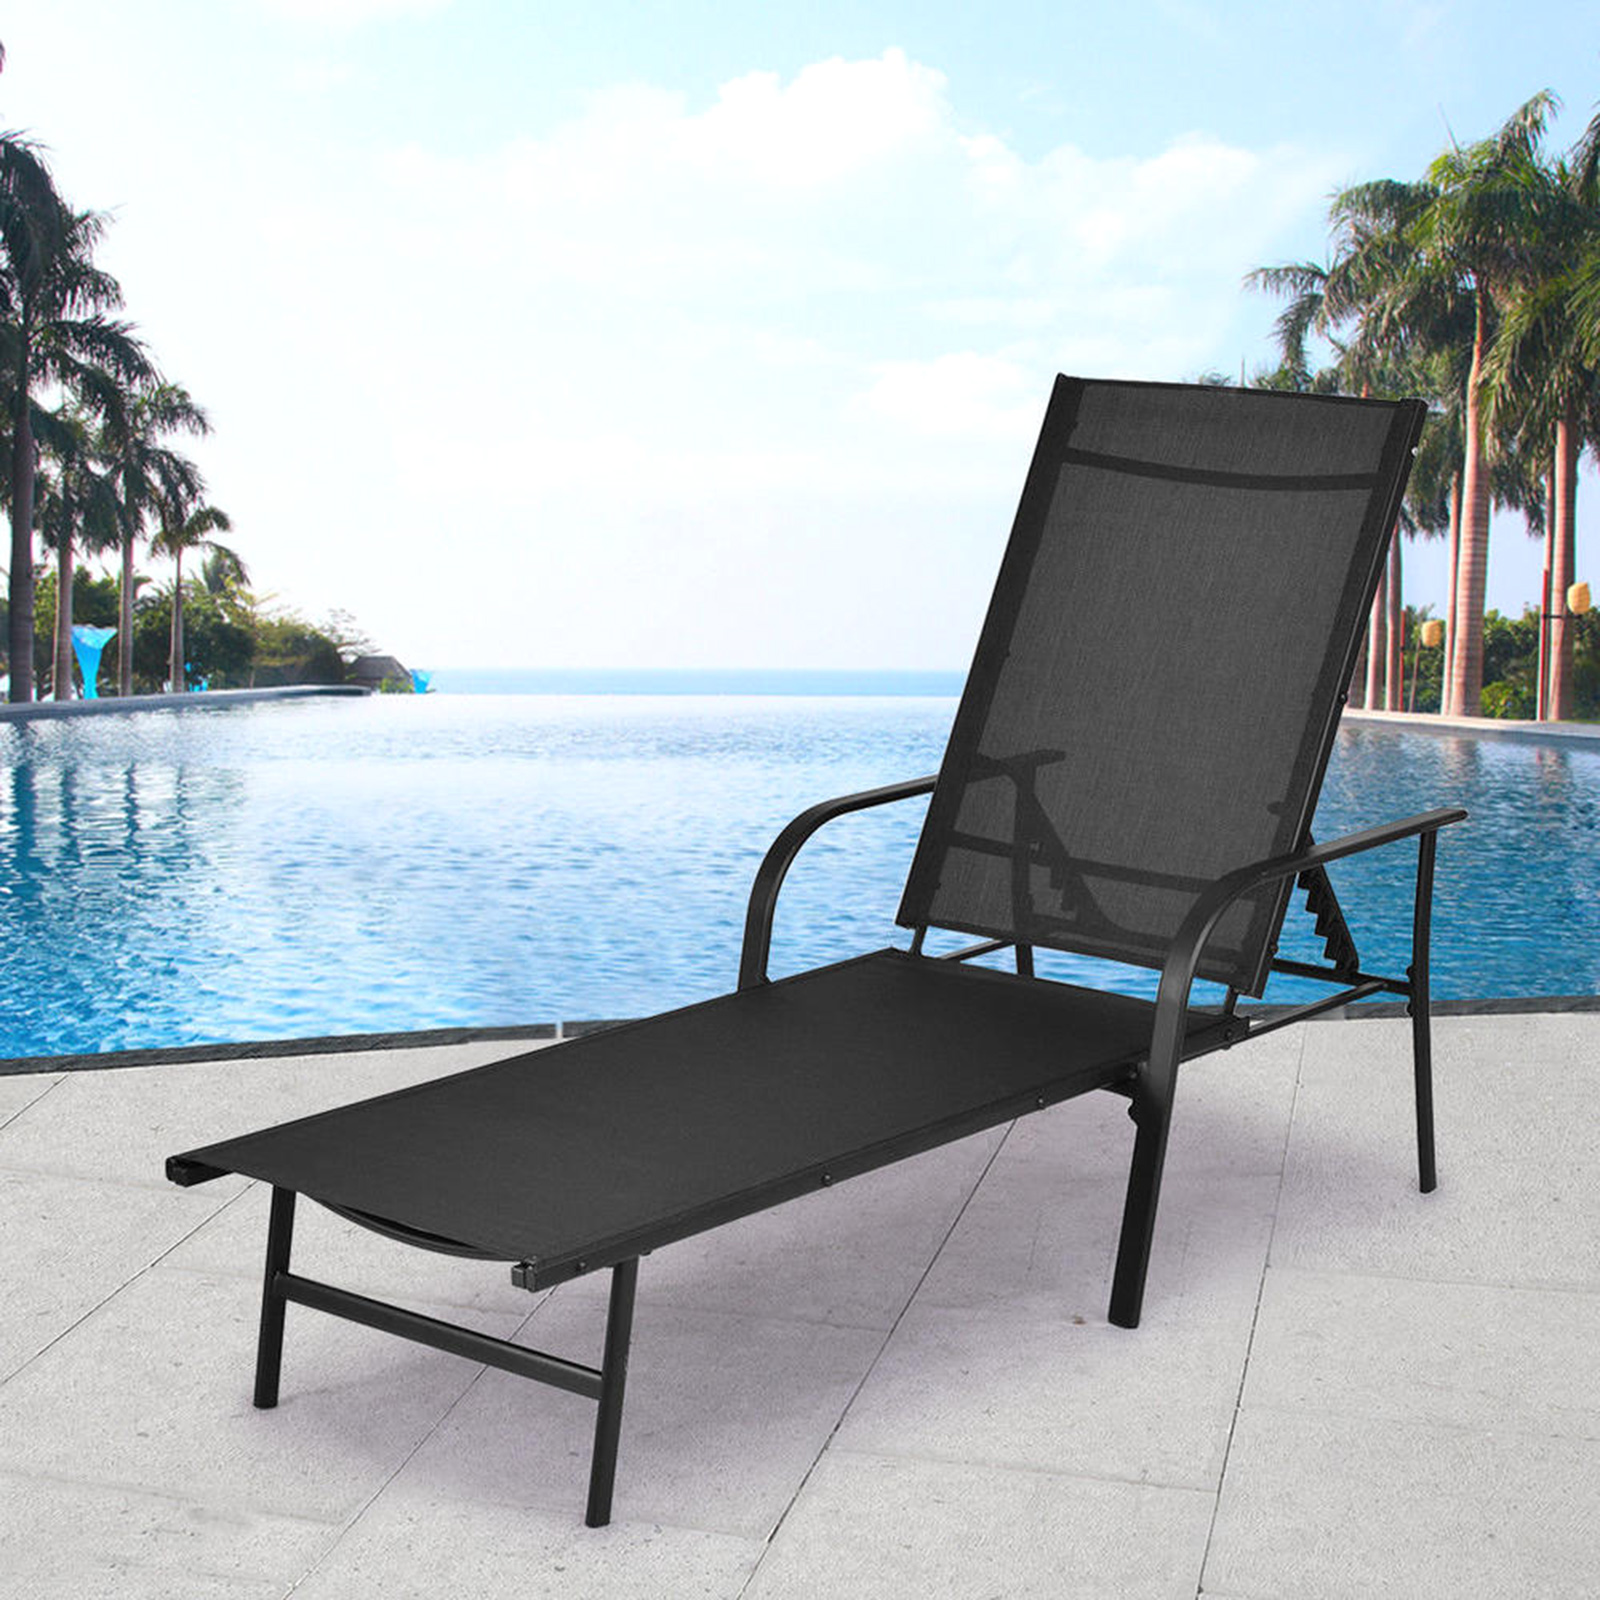 lounge chair patio covers hong kong chaise chairs sears costway pool recliner furniture with adjustable back new